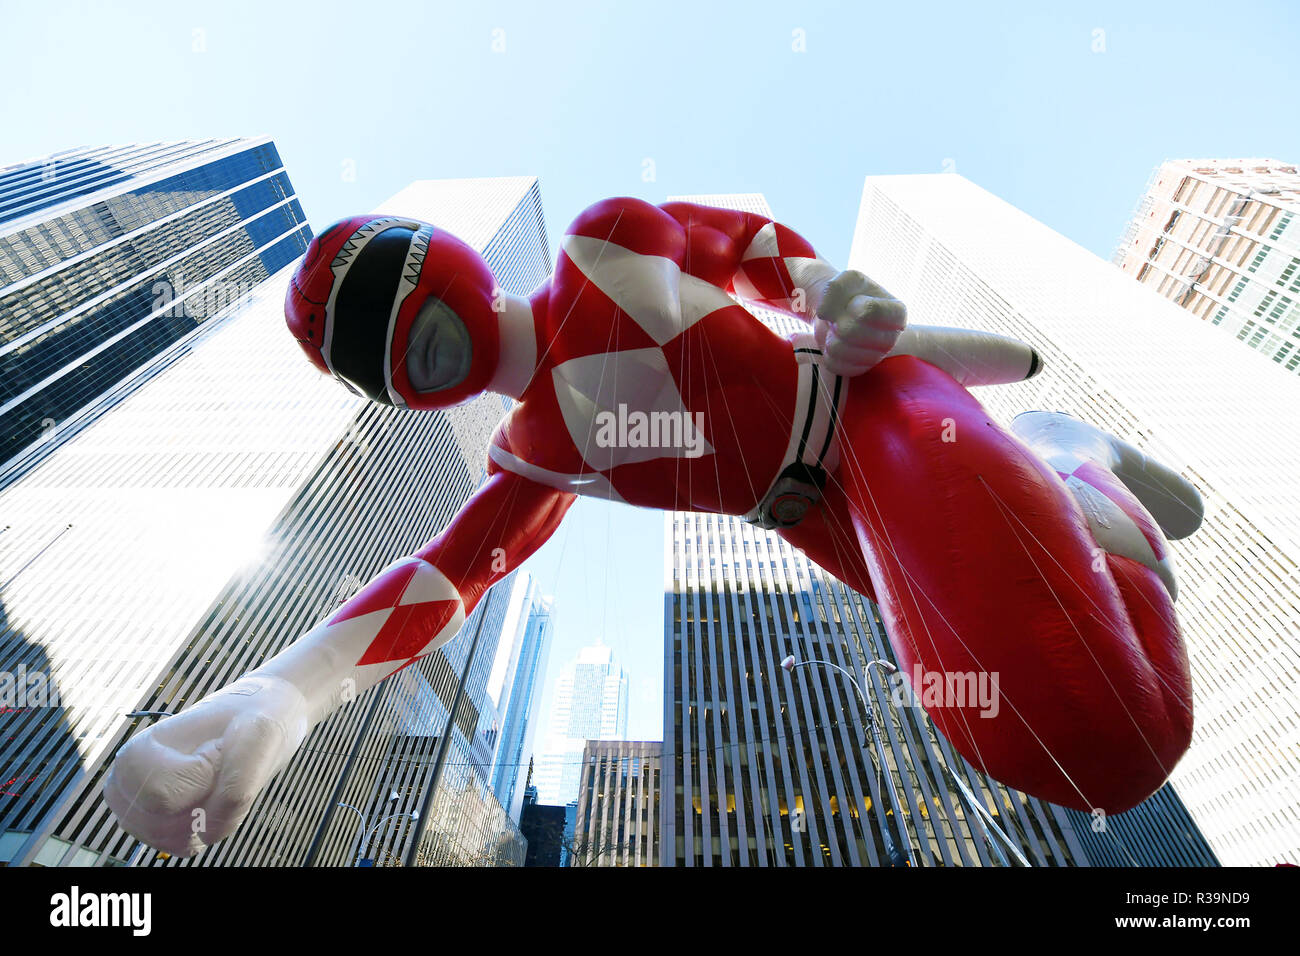 New York, USA. 22nd Nov, 2018. The balloon of Red Mighty Morphin Power Ranger is seen during the 2018 Macy's Thanksgiving Day Parade in New York, the United States, on Nov. 22, 2018. Despite frigid cold and strong winds, millions of people from New York and around the world lined the streets of Manhattan to watch the dazzling display of balloons and floats at the 92nd annual Macy's Thanksgiving Day Parade on Thursday. Credit: Li Rui/Xinhua/Alamy Live News - Stock Image